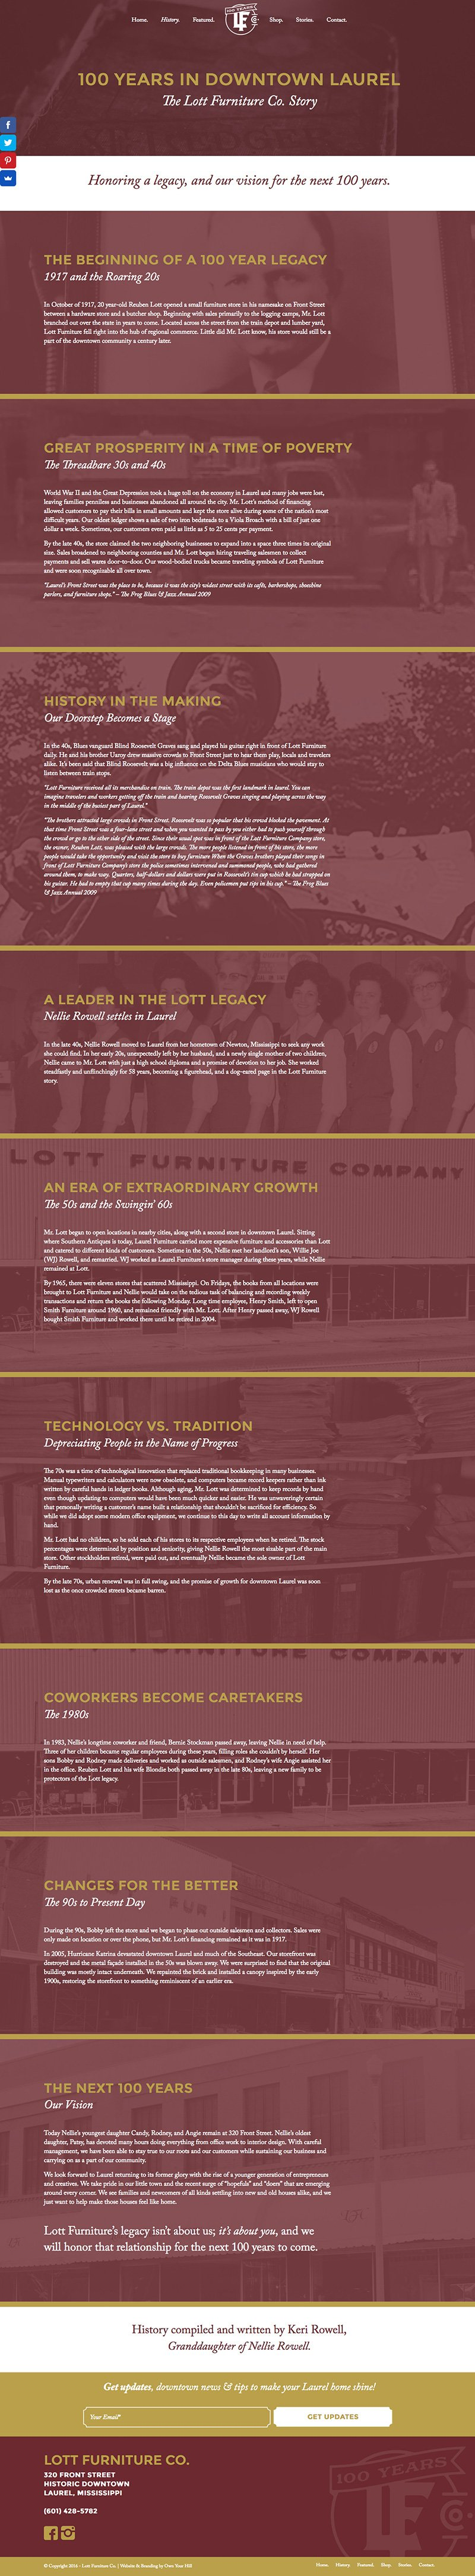 Leadership In Downtown Laurel. The Folks At Lott Furniture ...